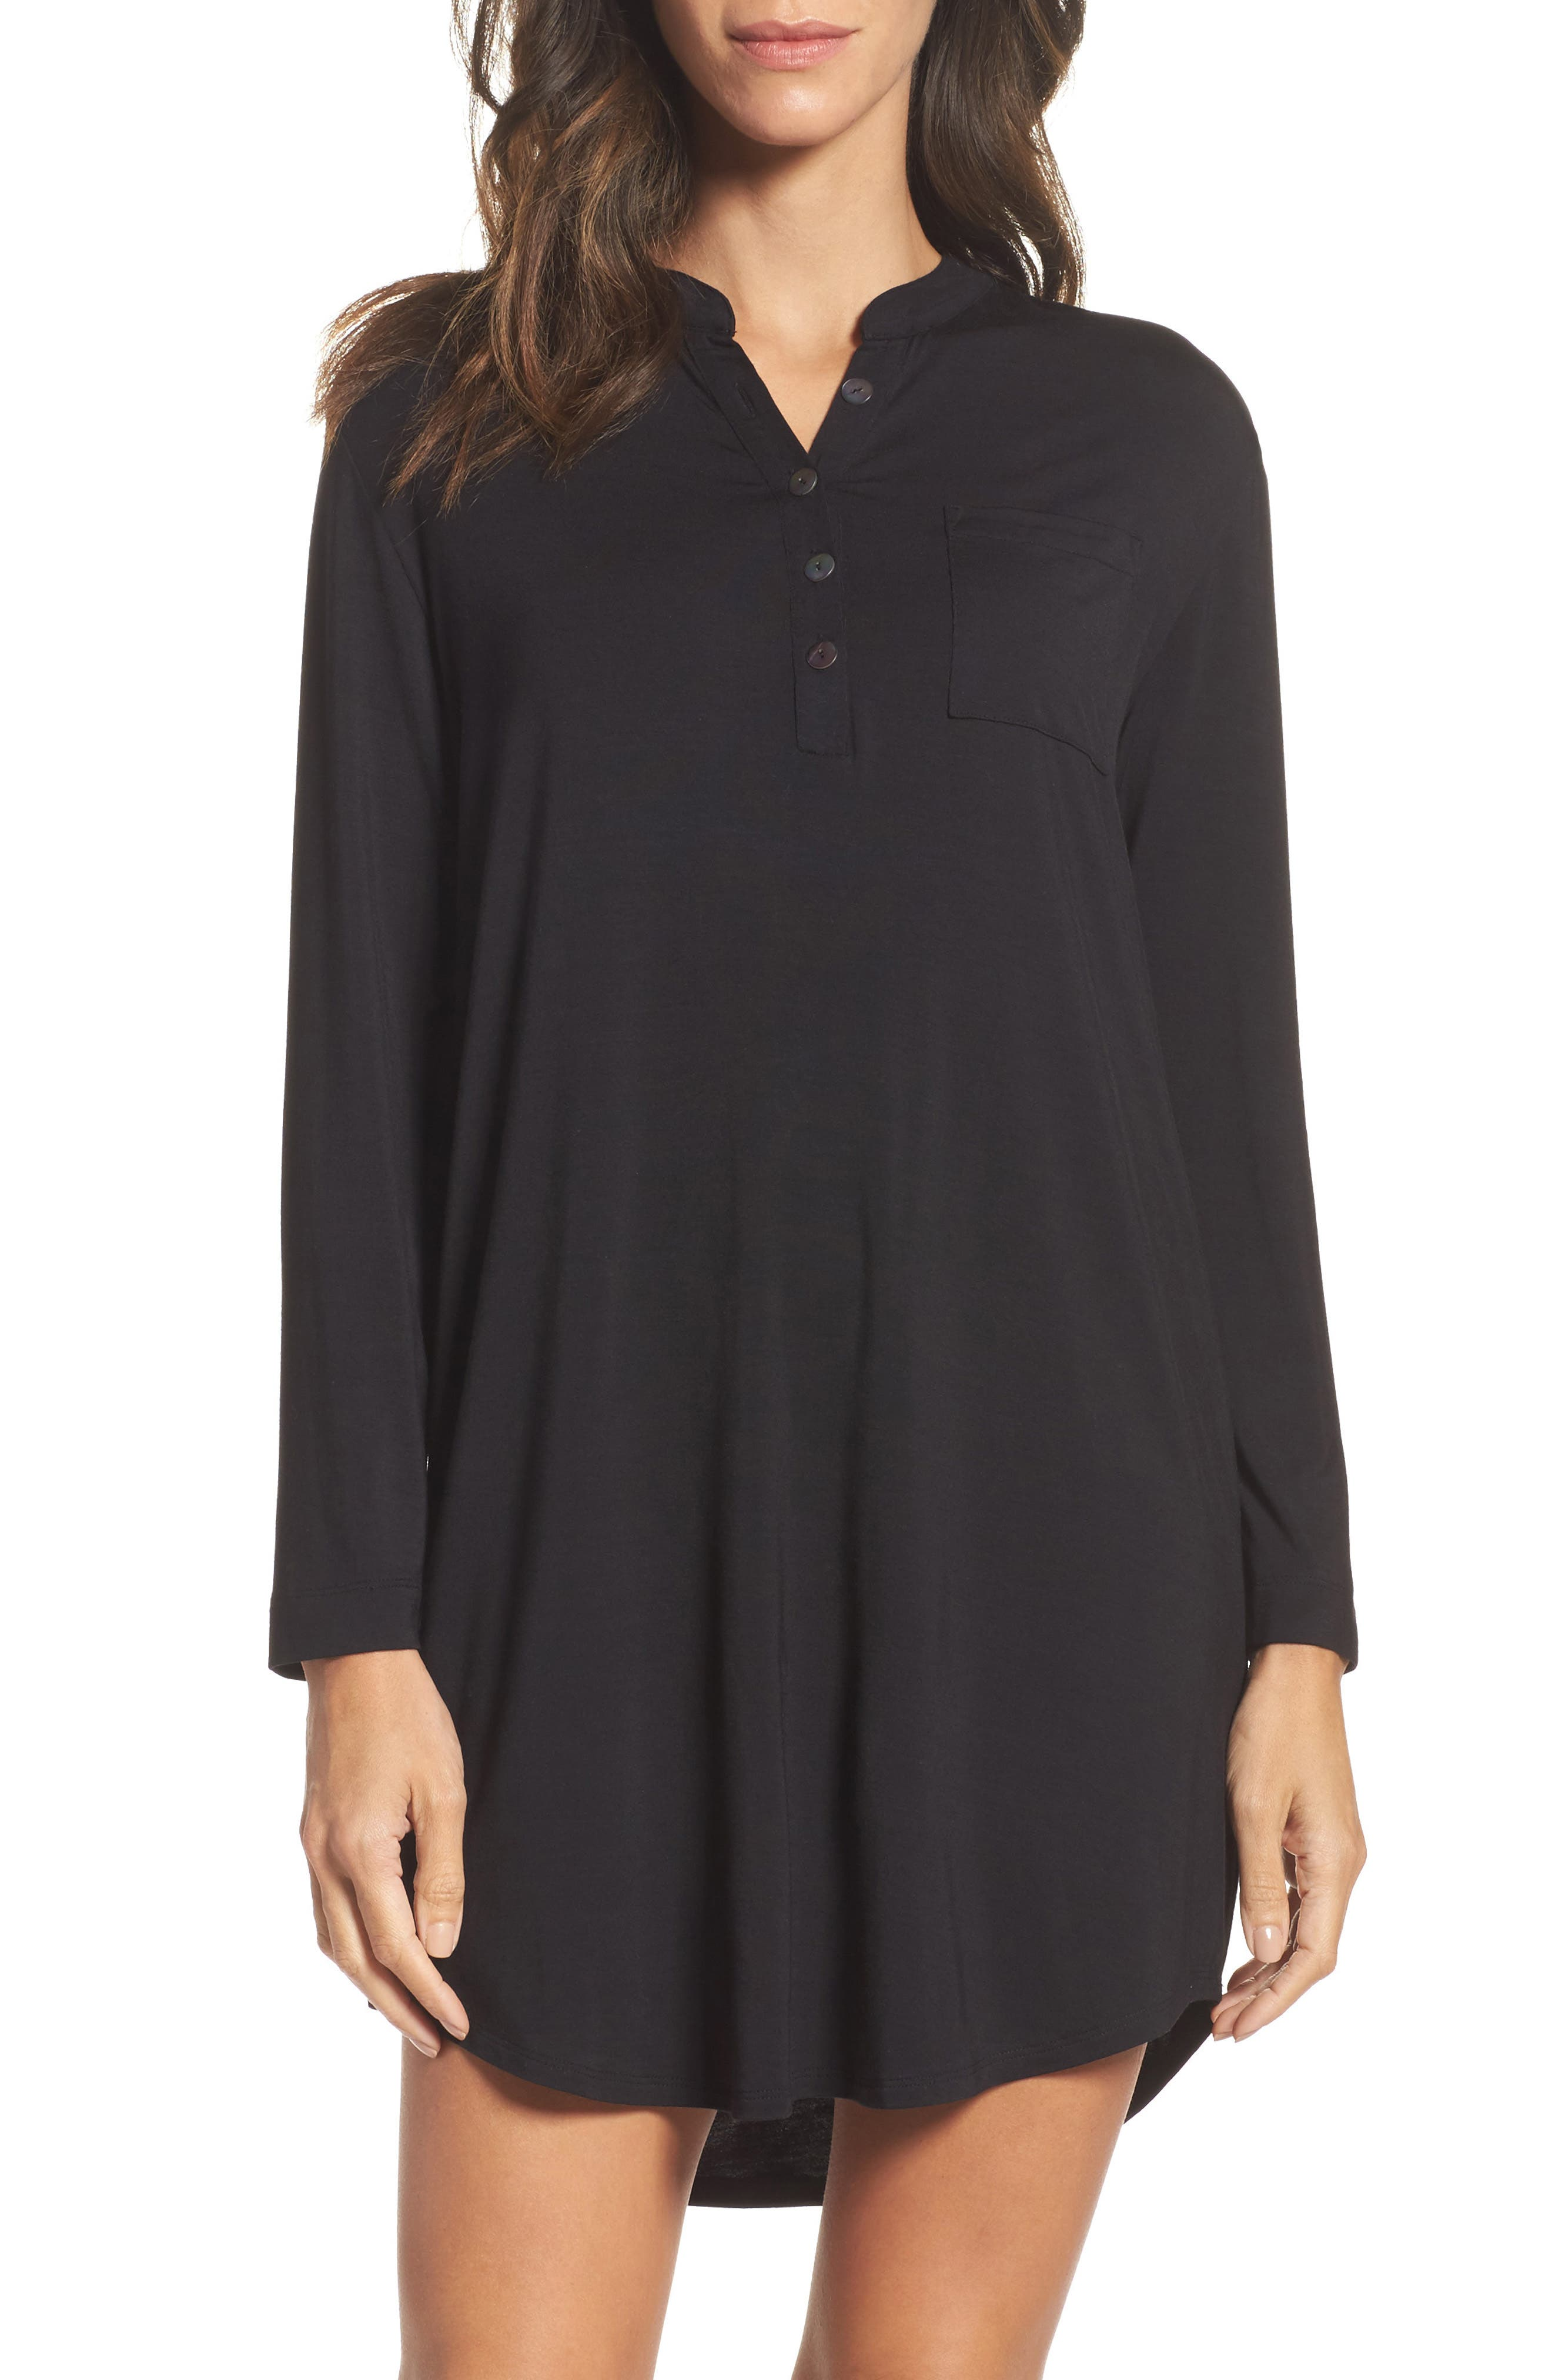 Midnight by Carole Hochman Jersey Sleep Shirt